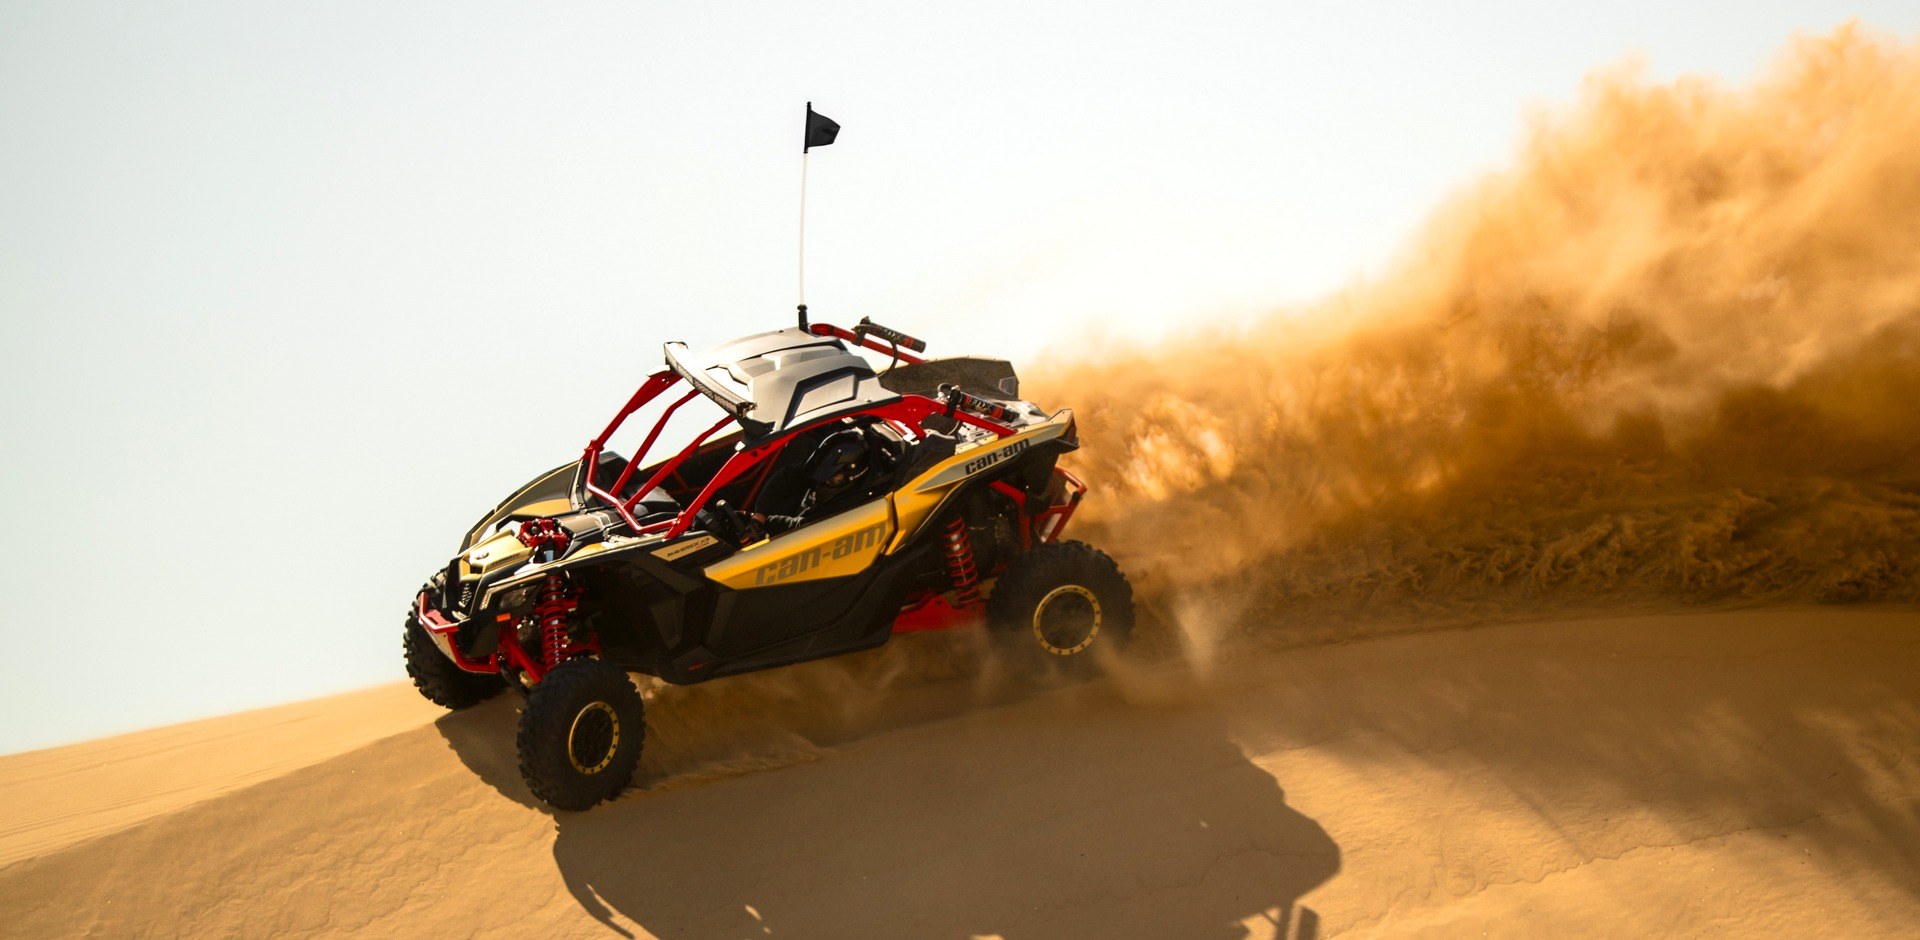 Maverick X3 X-rs Turbo 154 к.с.